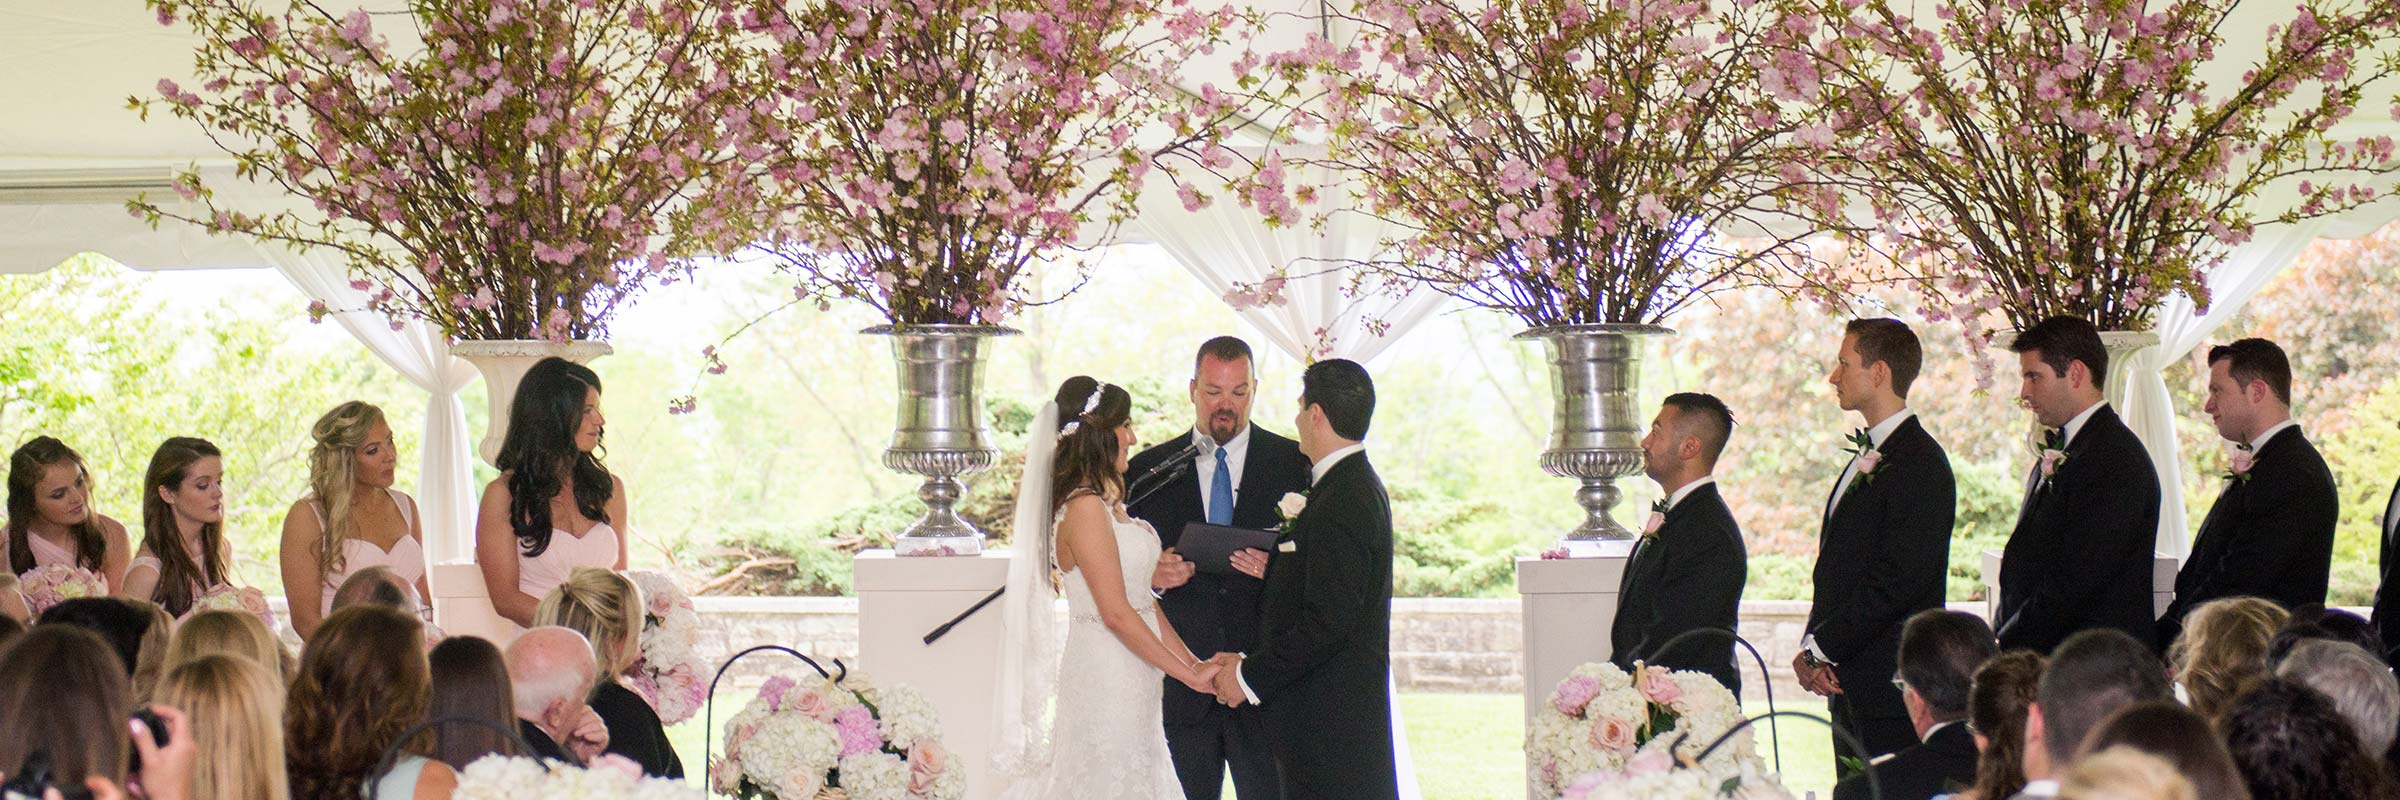 Outdoor Wedding Tent Fresh Flowers Branches